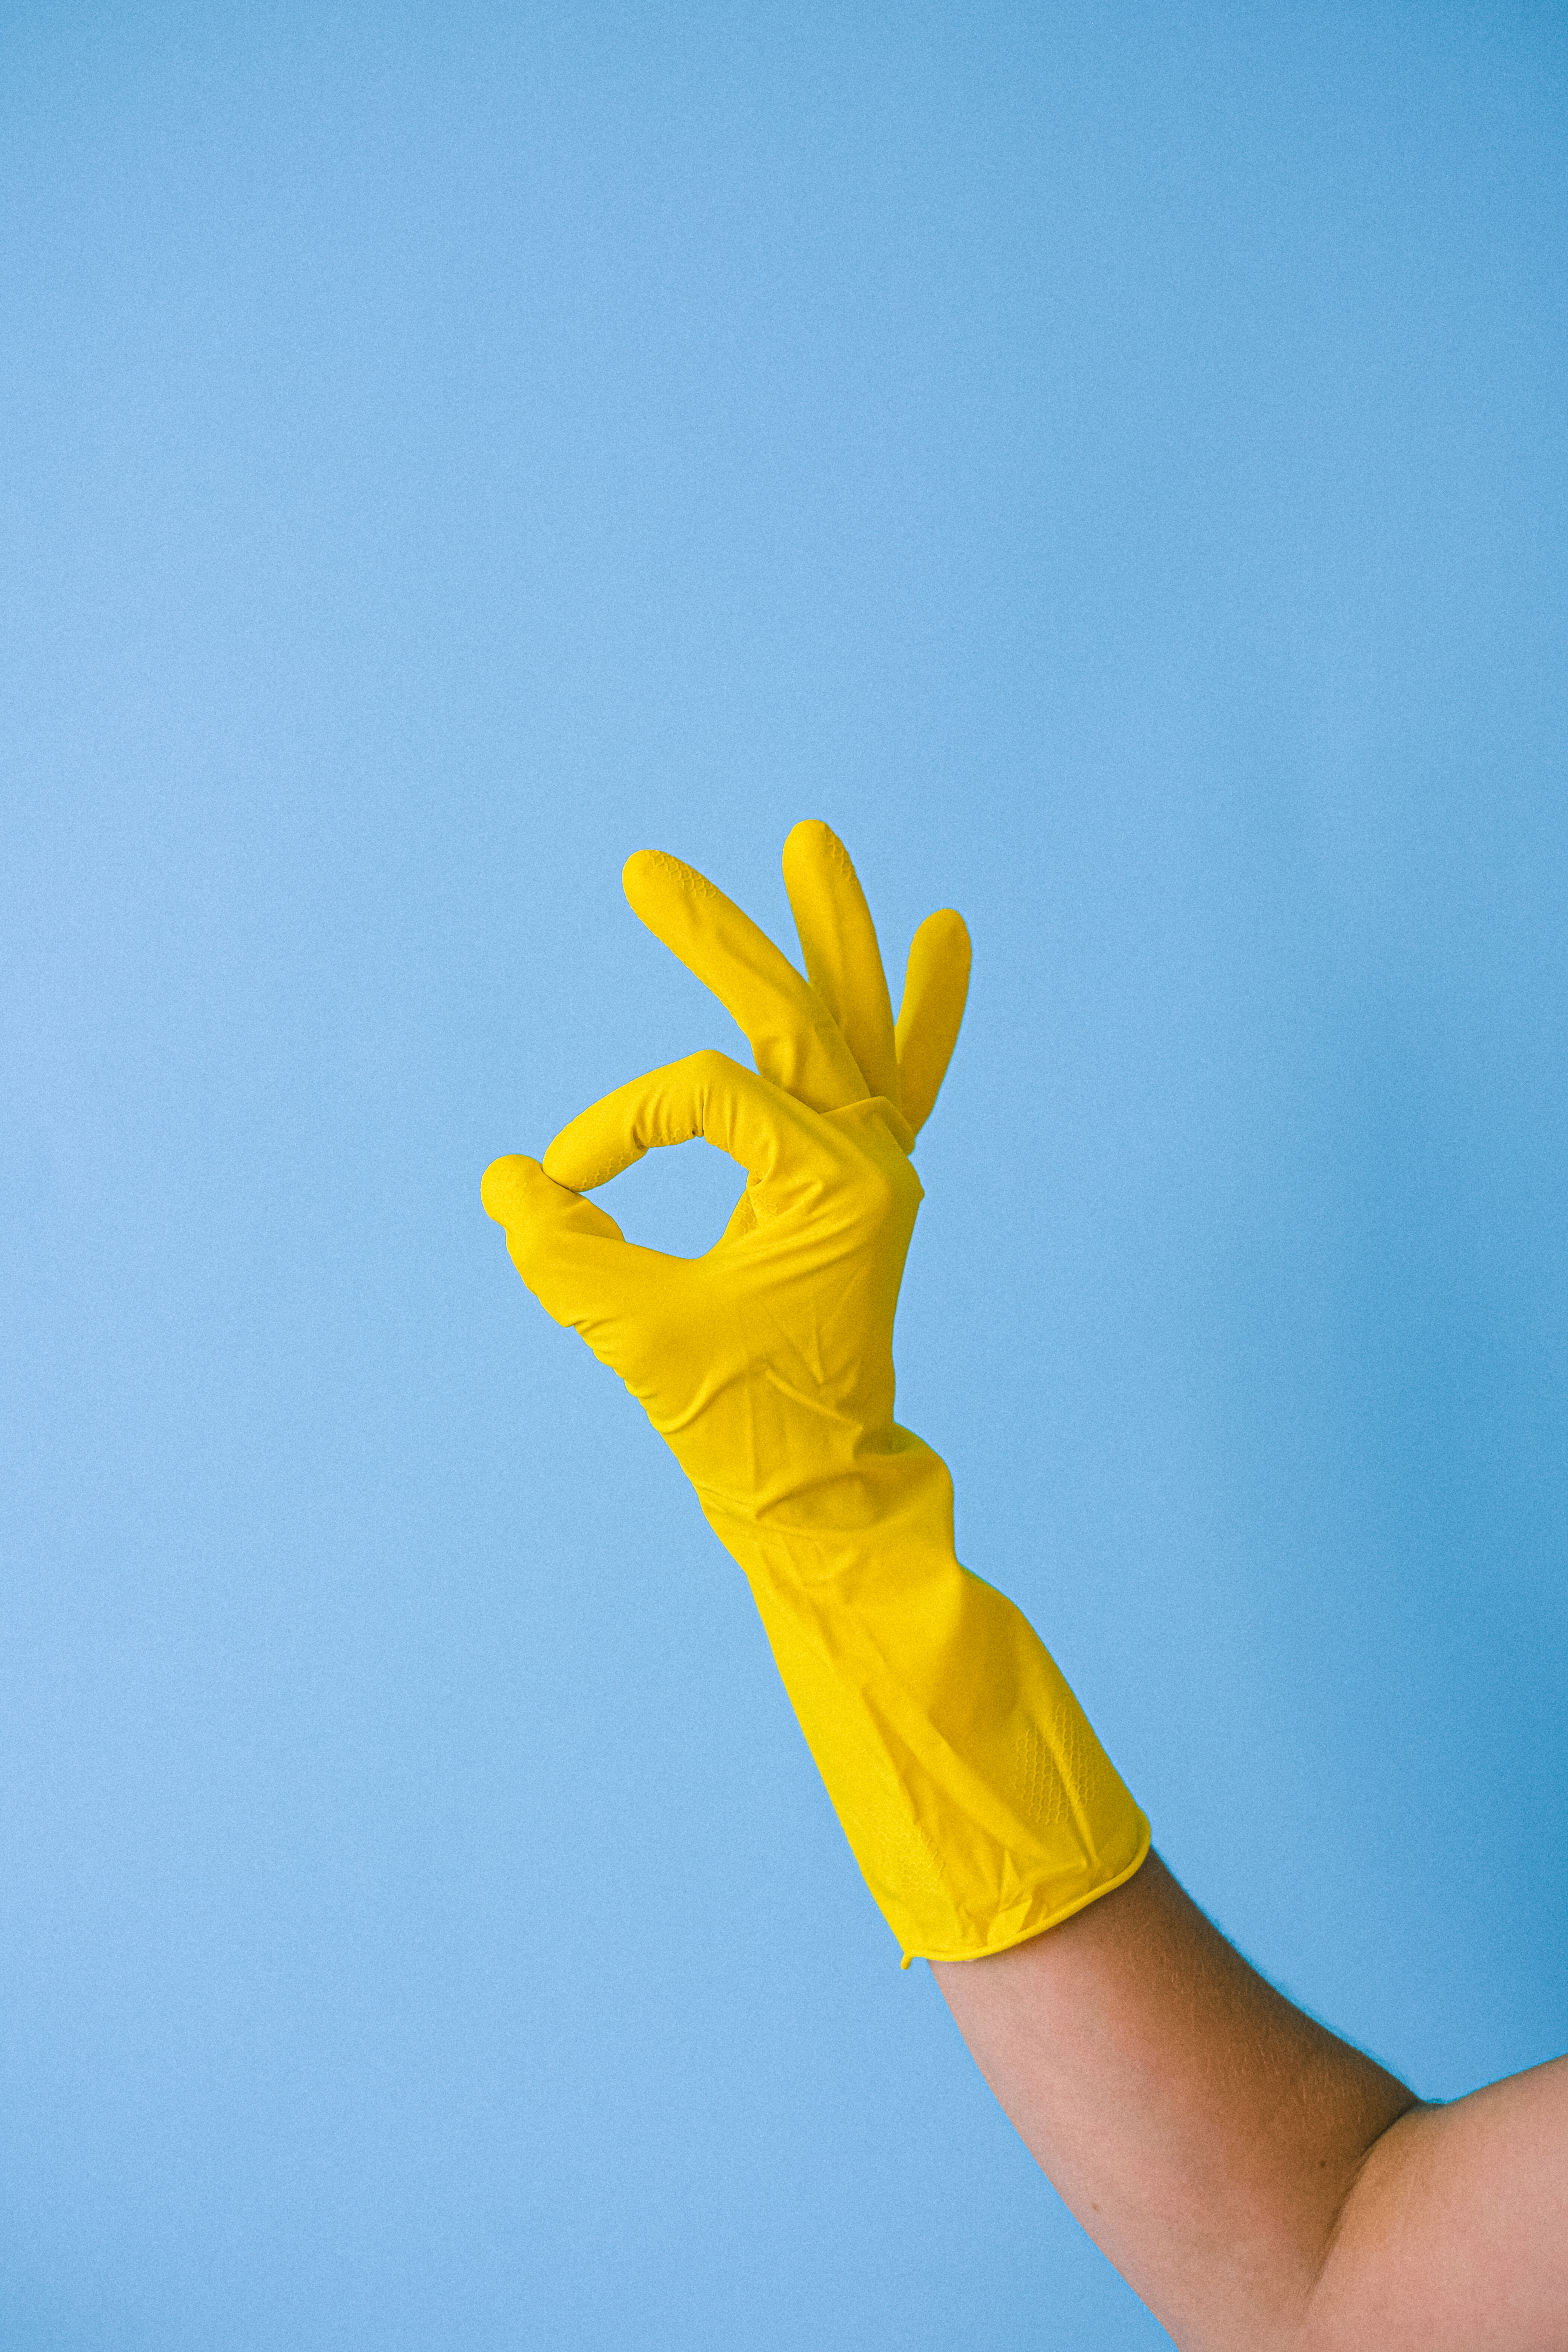 crop faceless person in rubber glove showing okay gesture